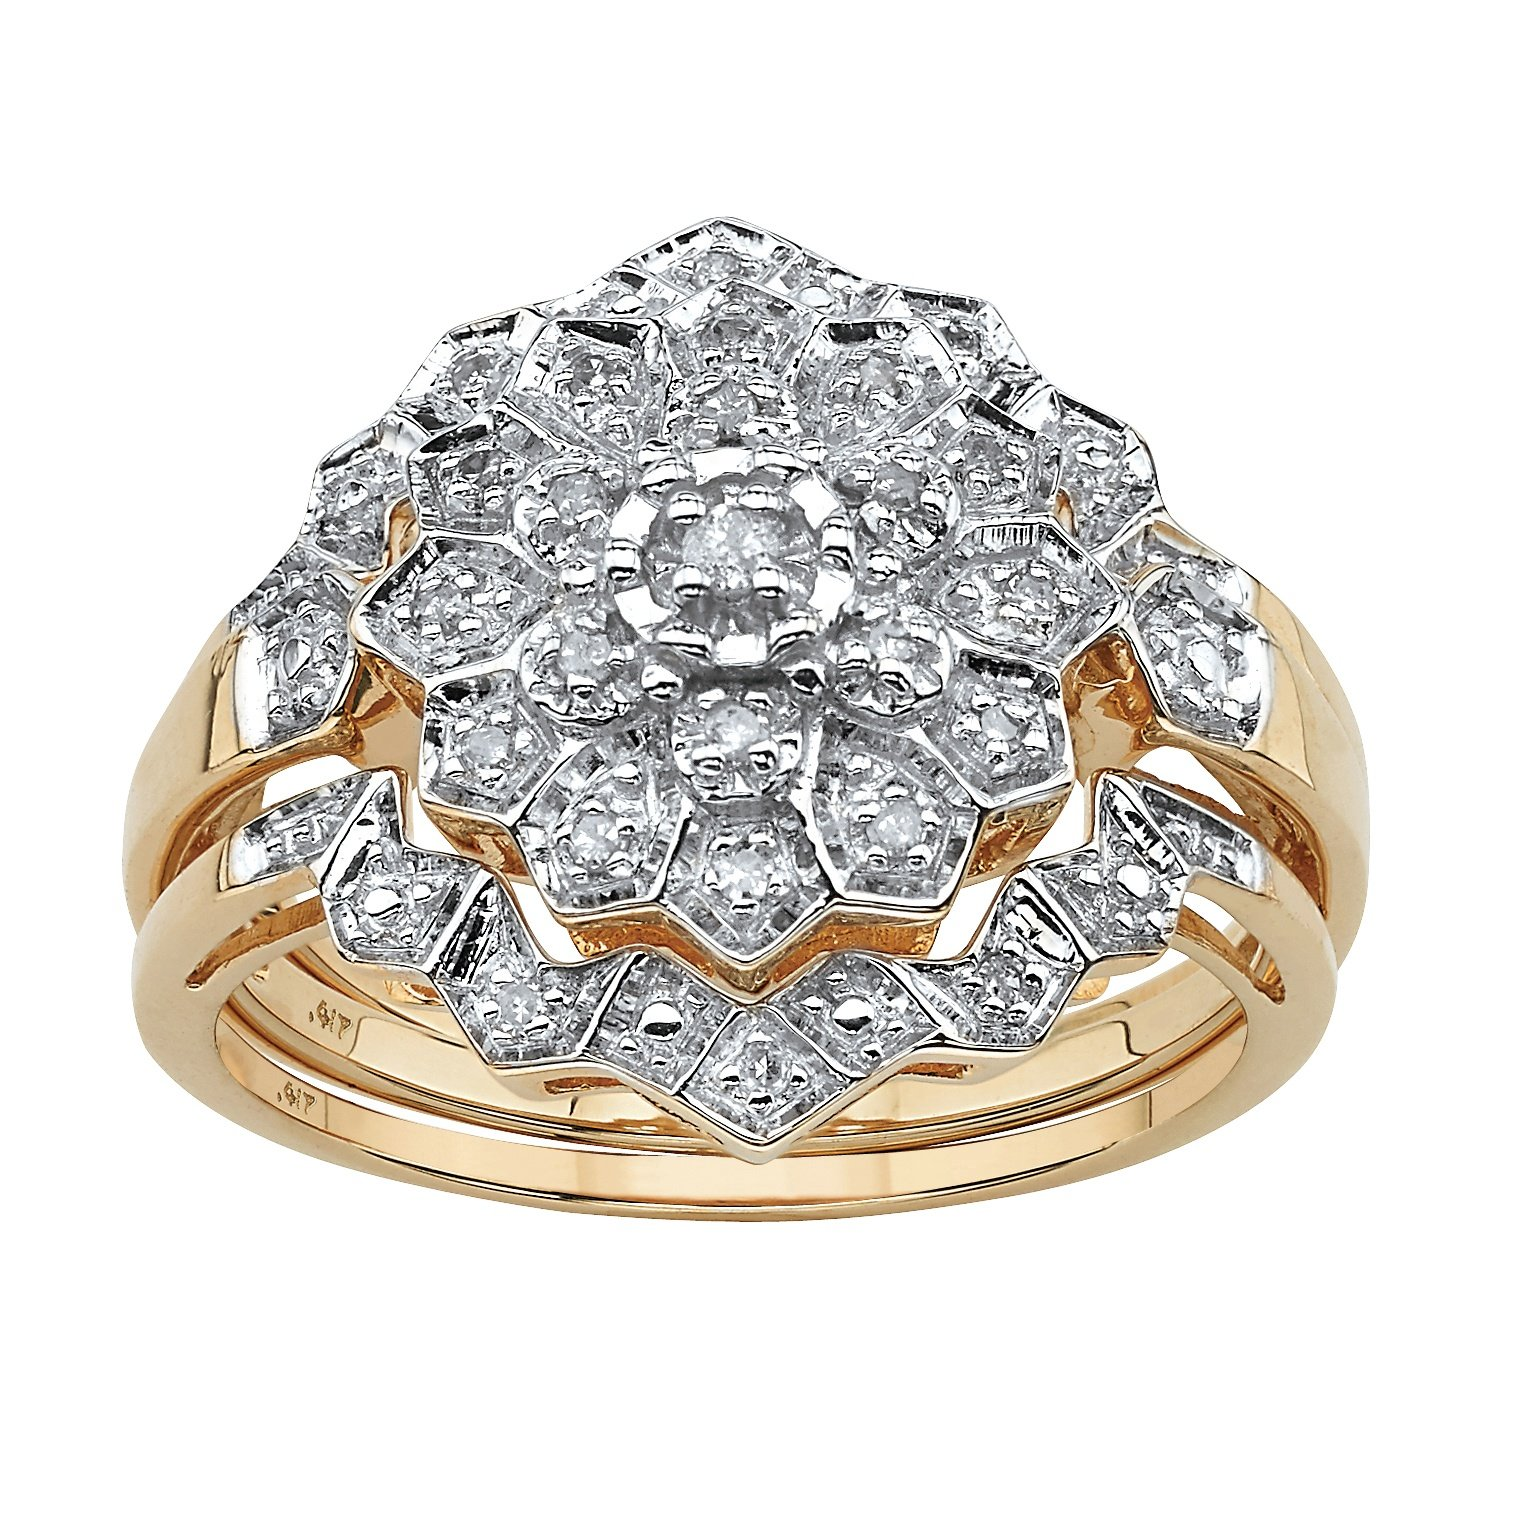 Solid 10K Gold Round Pave Diamond 3 Piece Pave Bridal Ring Set (.14 cttw, HI Color, I3 Clarity) Size 10